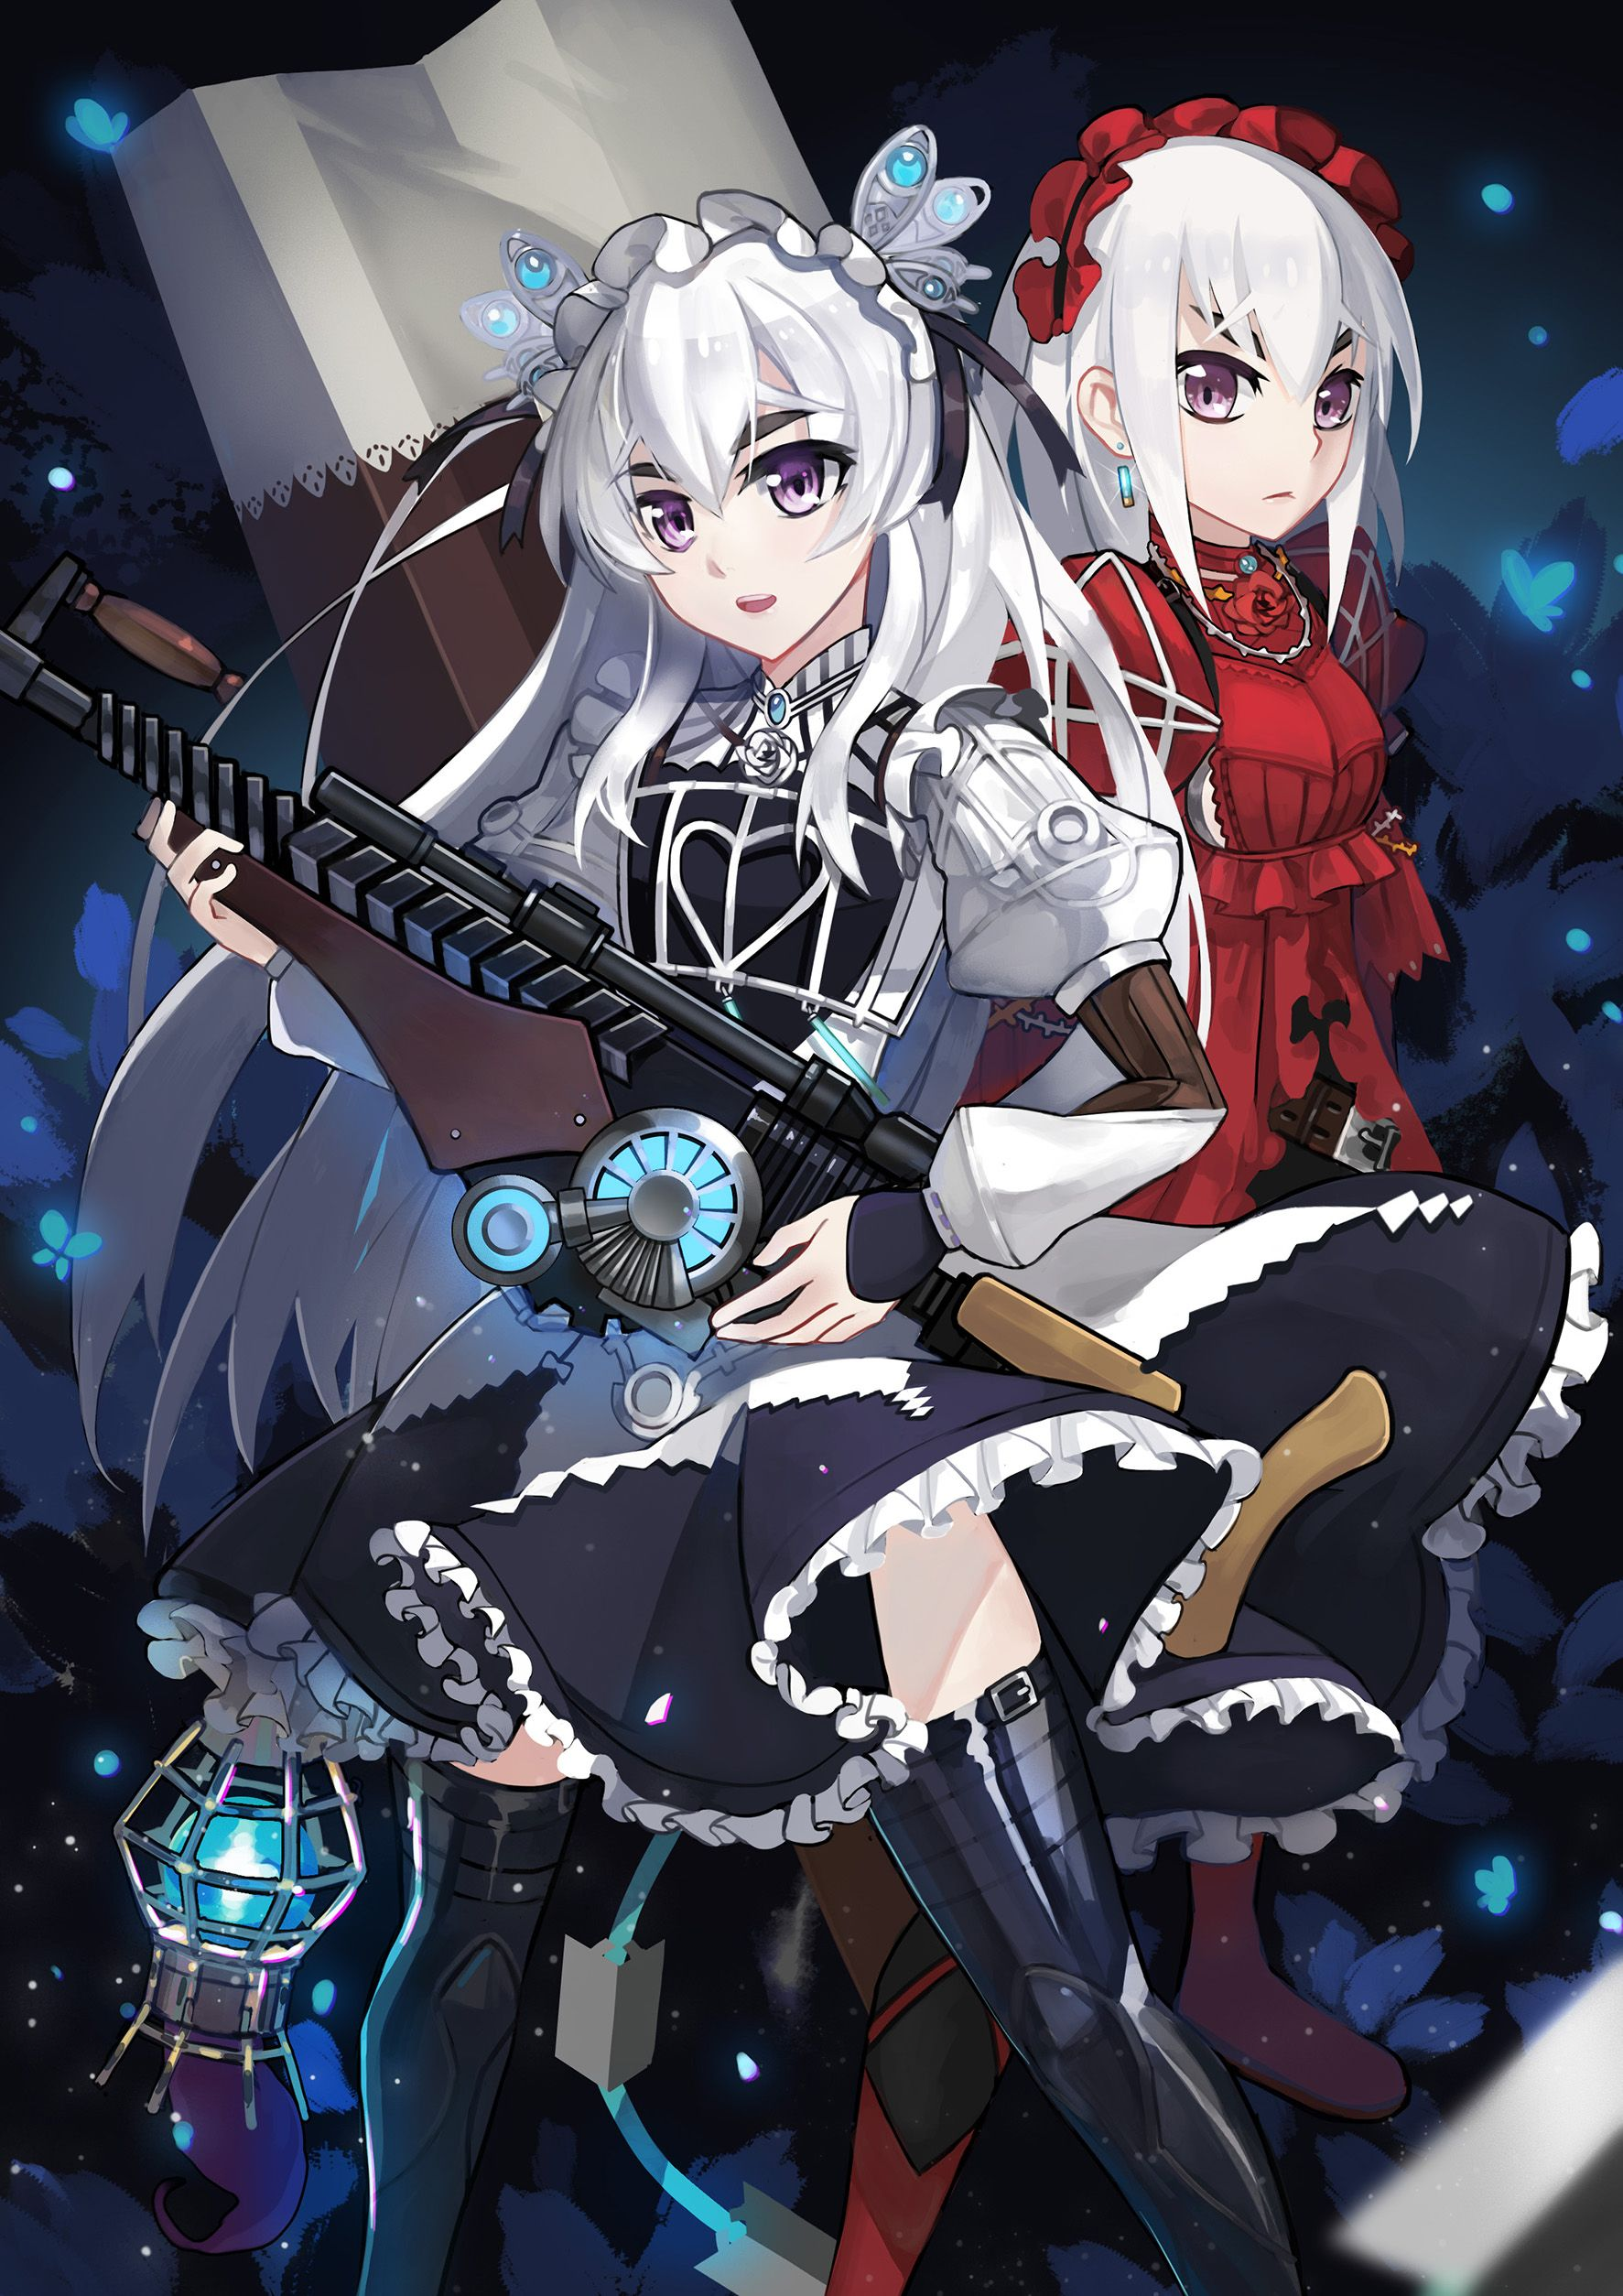 HITSUGI NO CHAIKA - CHAIKA THE COFFIN PRINCES